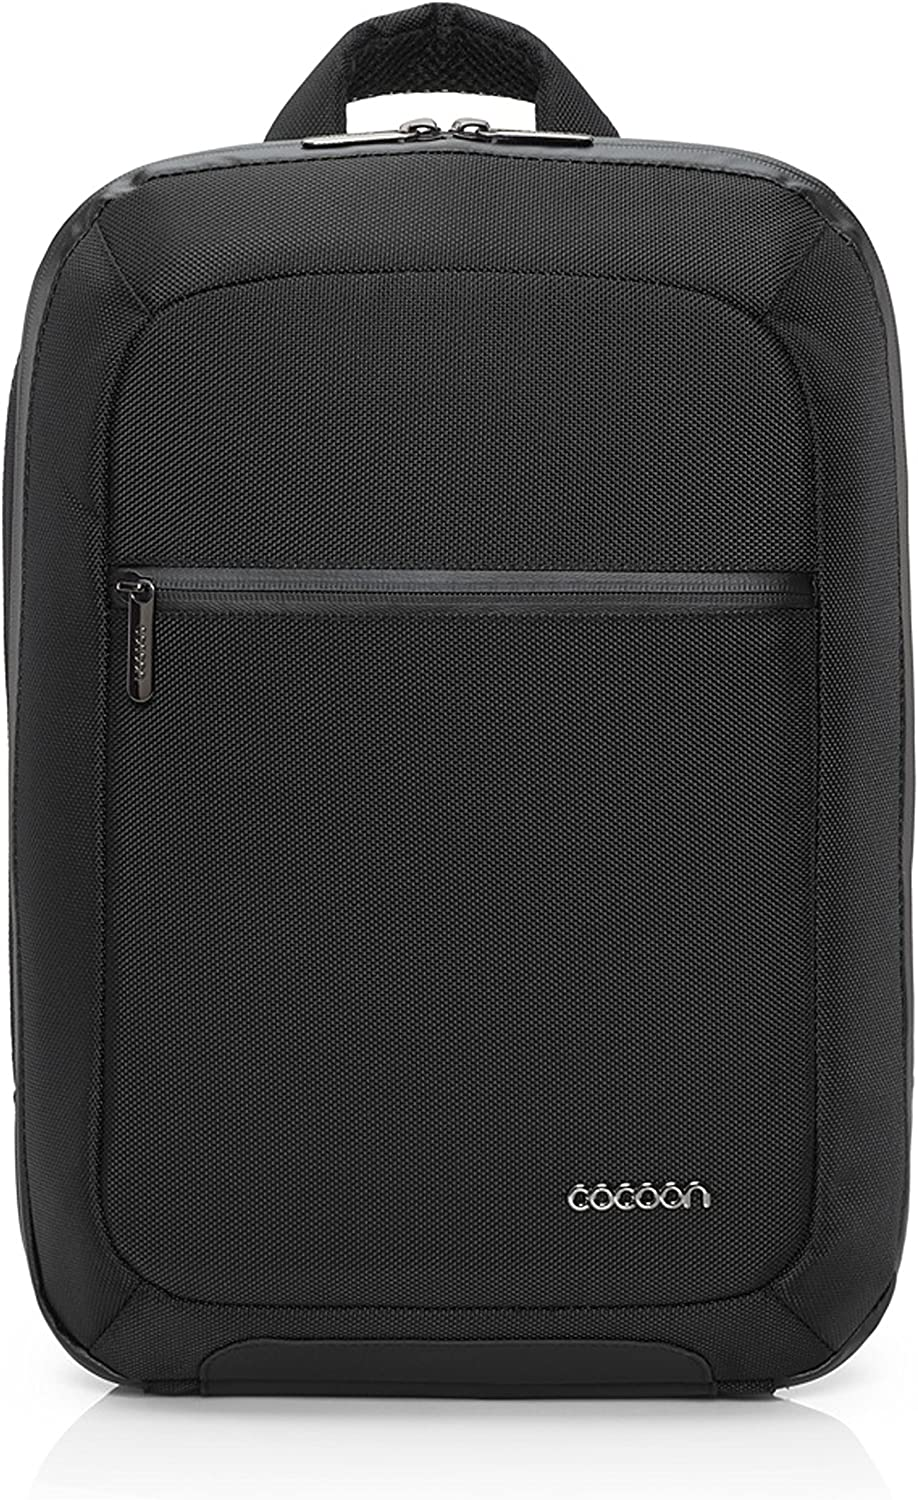 """Cocoon MCP3401BK Slim 15"""" Backpack with Built-in Grid-IT! Accessory Organizer (Black)"""